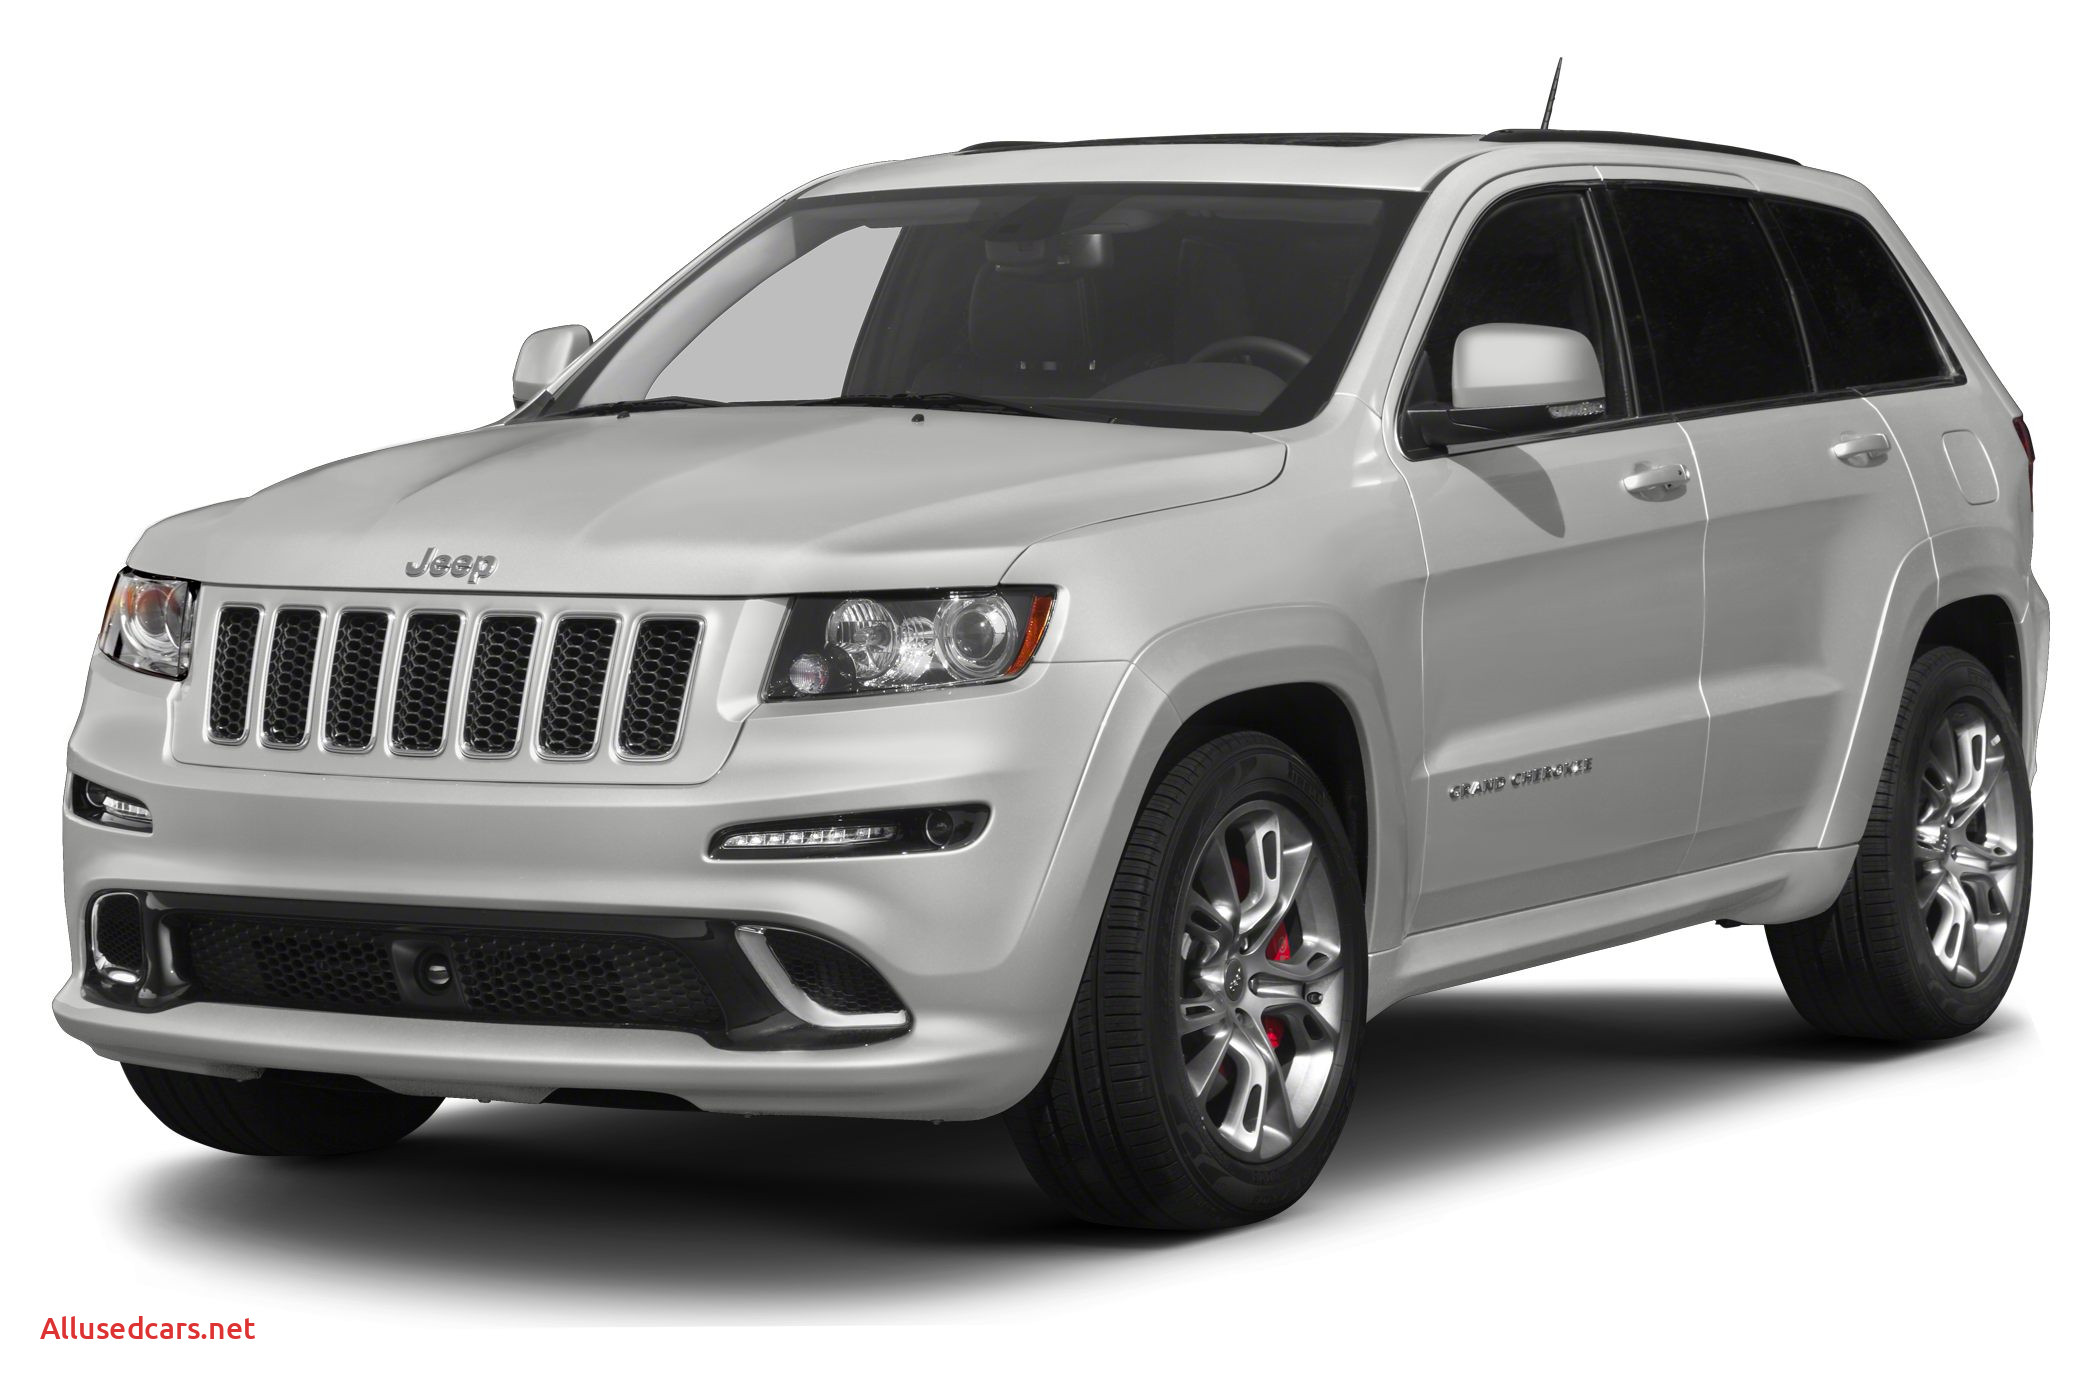 Jeep Grand Cherokee Srt8 Best Of 2013 Jeep Grand Cherokee Srt8 4dr 4×4 Pricing and Options